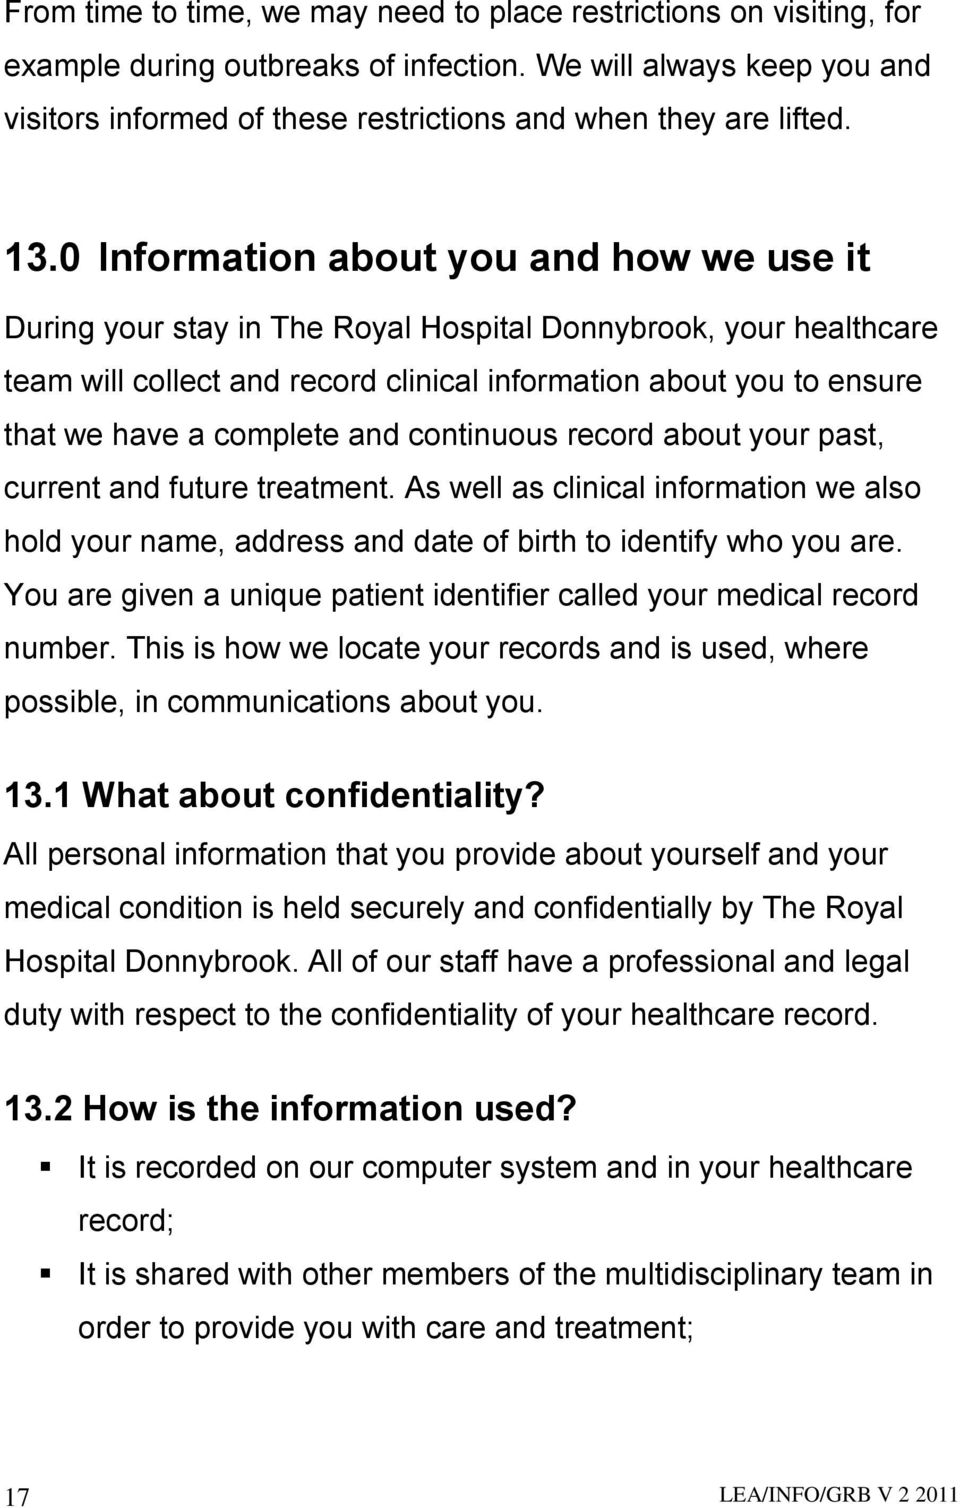 0 Information about you and how we use it During your stay in The Royal Hospital Donnybrook, your healthcare team will collect and record clinical information about you to ensure that we have a